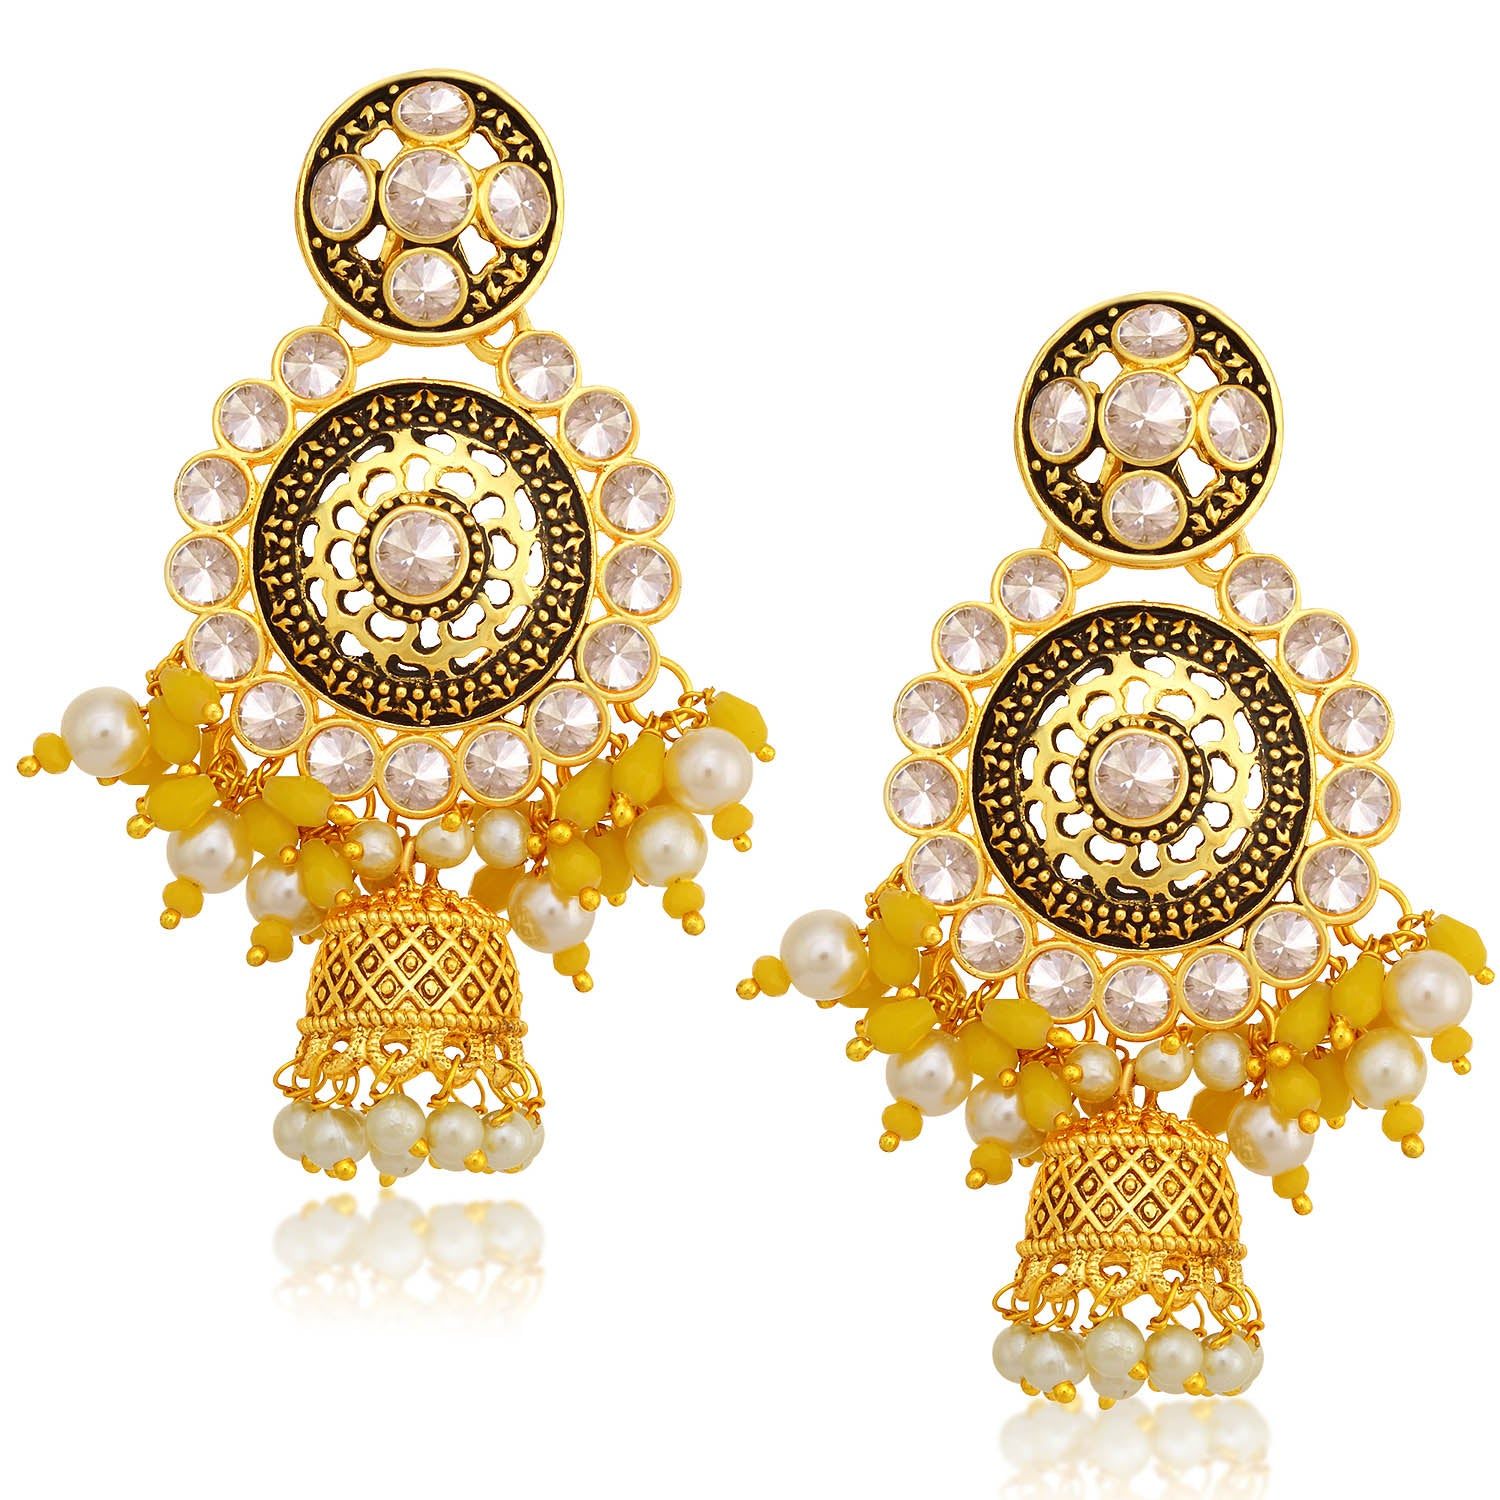 Sukkhi Stunning Gold Plated Pearl Jhumki Earring For Women-SUKKHI1-Earring